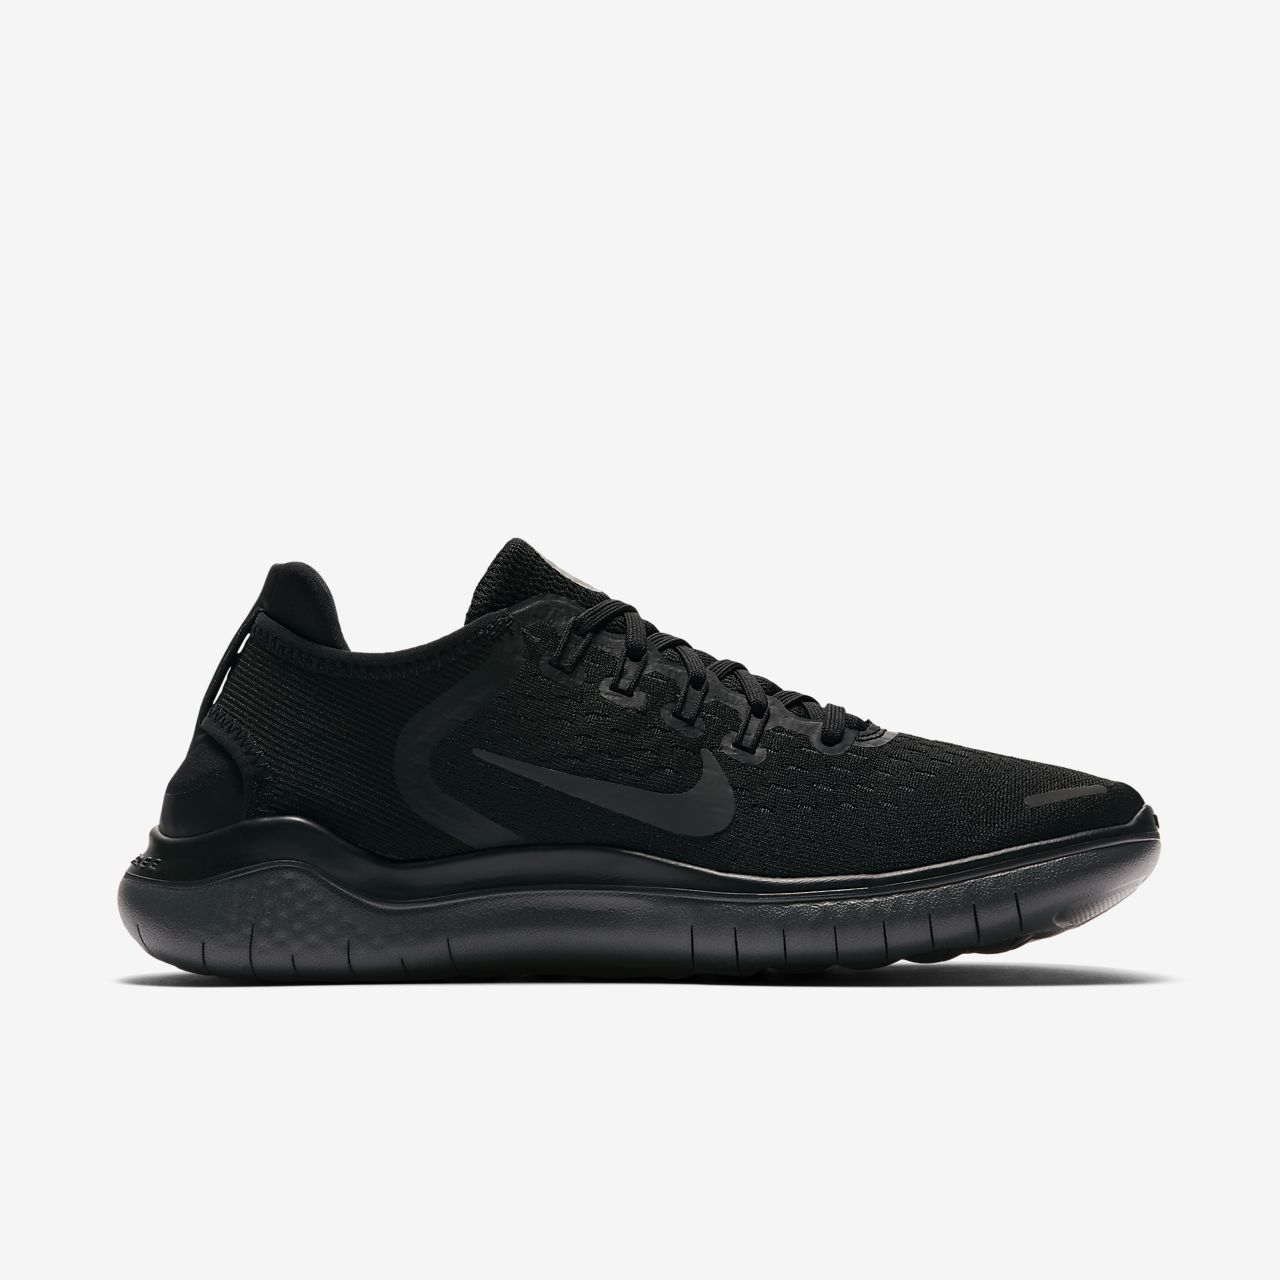 Free RN 2017, Scarpe Running Uomo, Nero (Black/Anthracite-Dark Grey-Cool Grey), 42 EU Nike